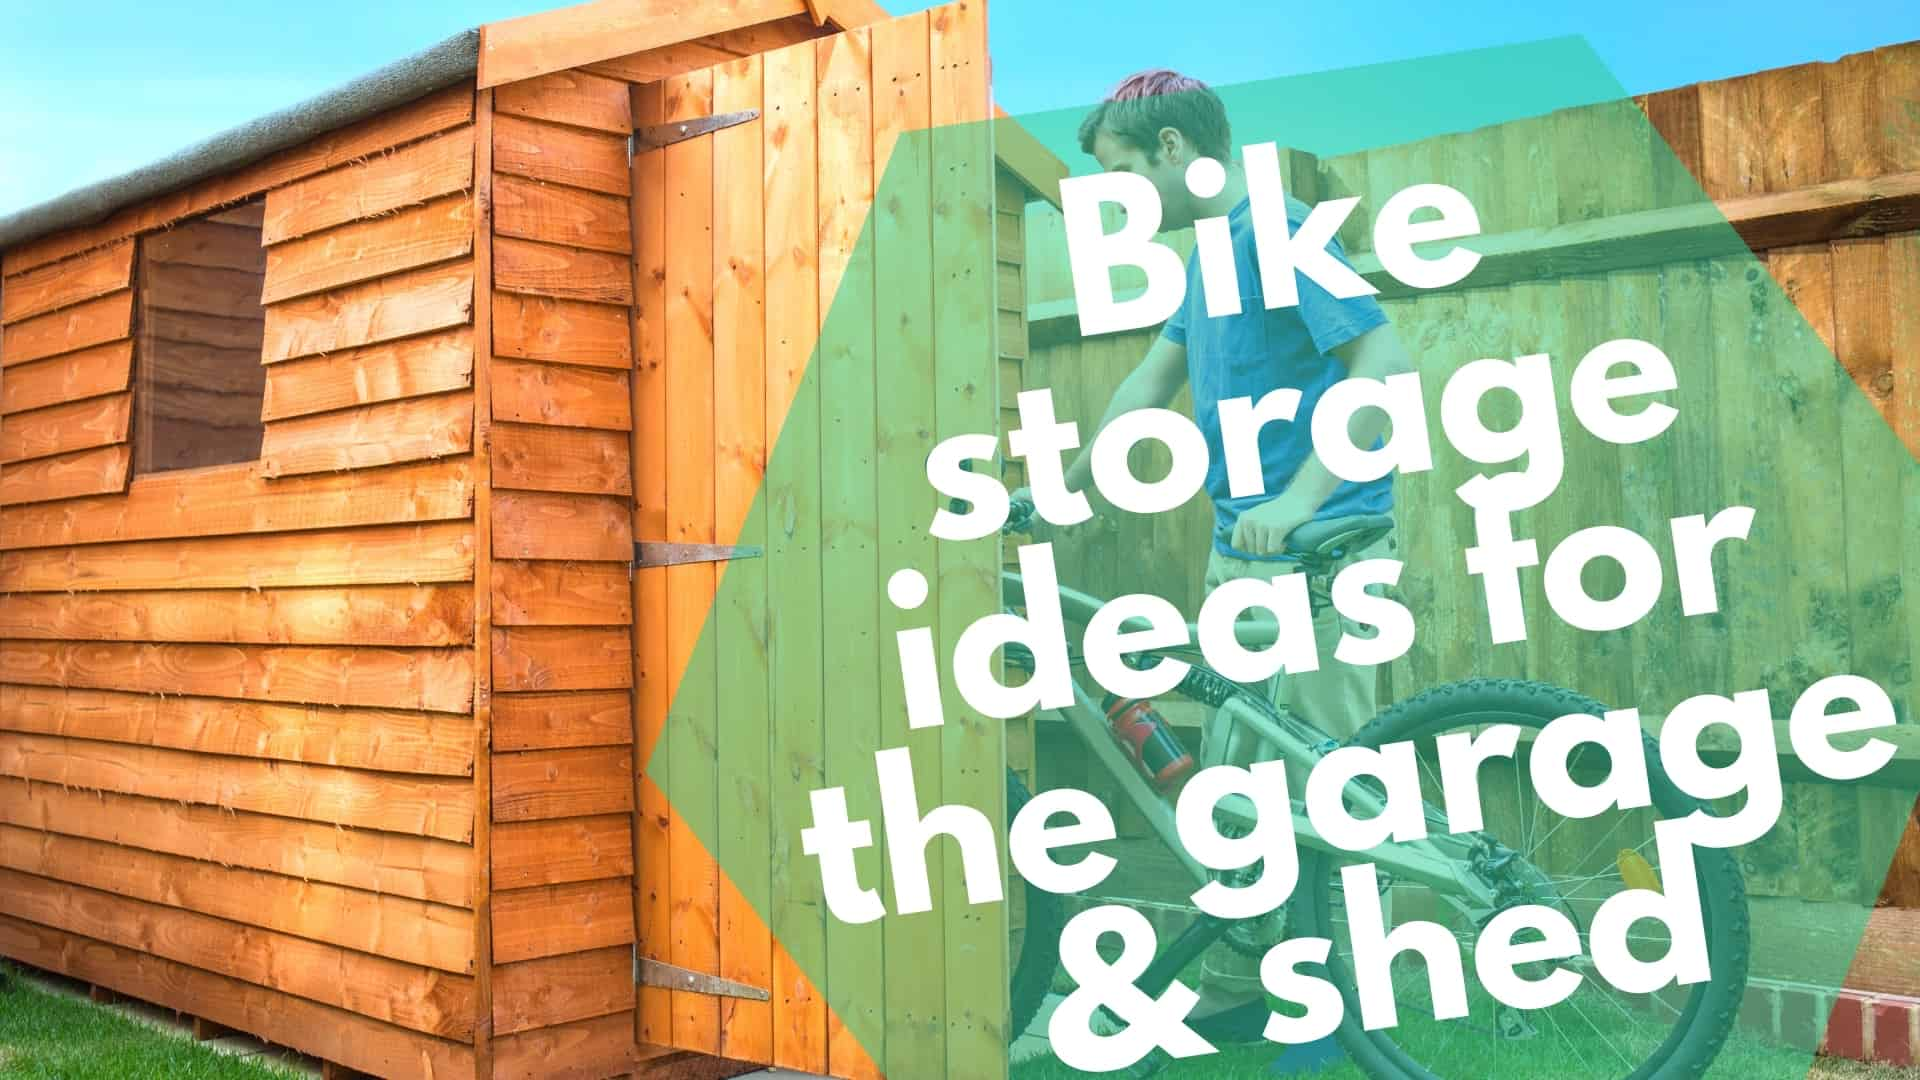 Bike storage ideas for the garage & shed